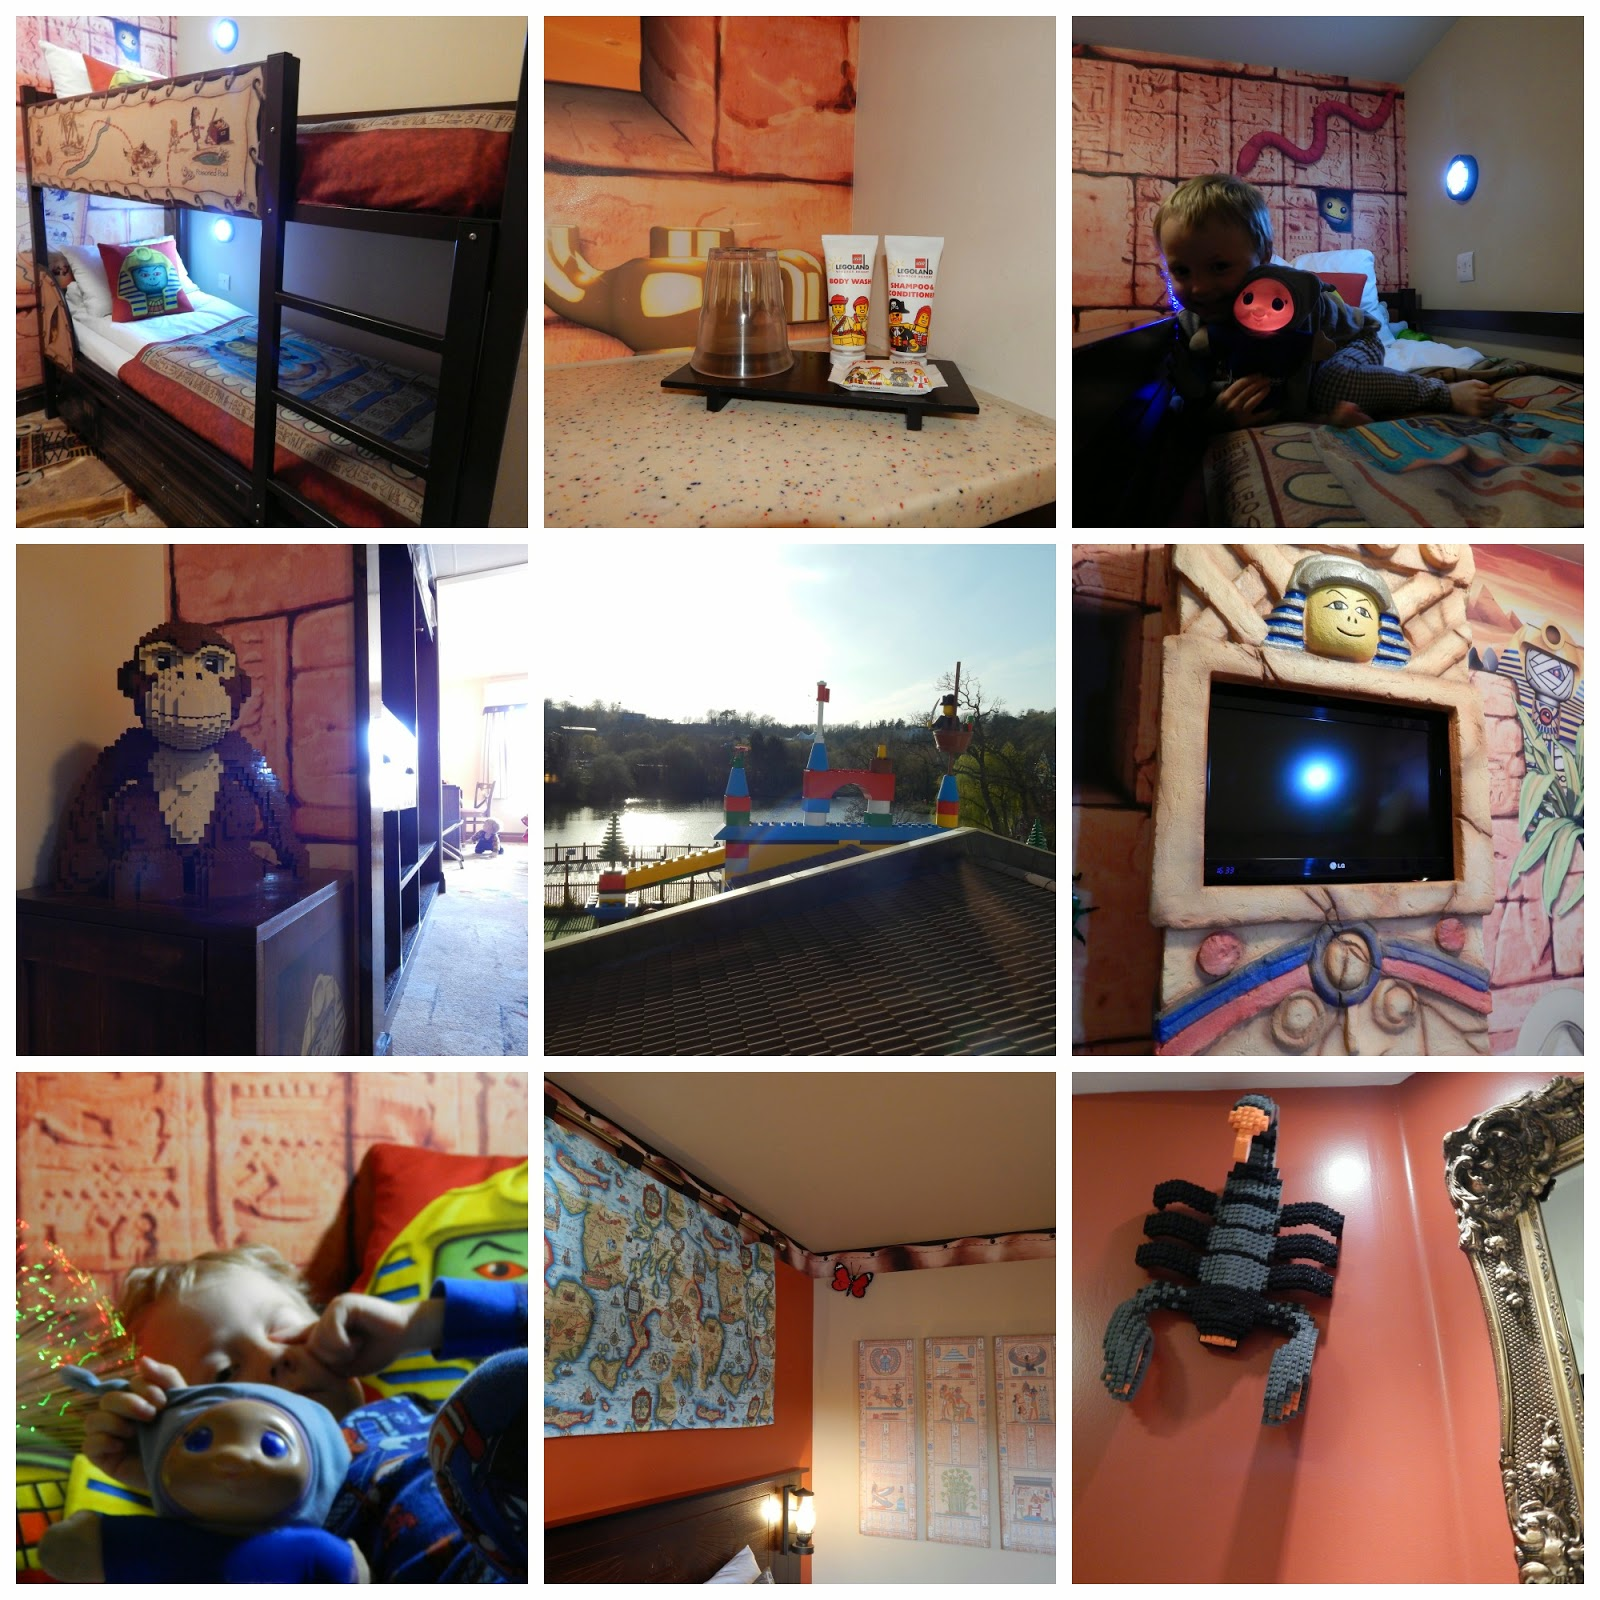 Legoland Hotel Adventure Themed Room